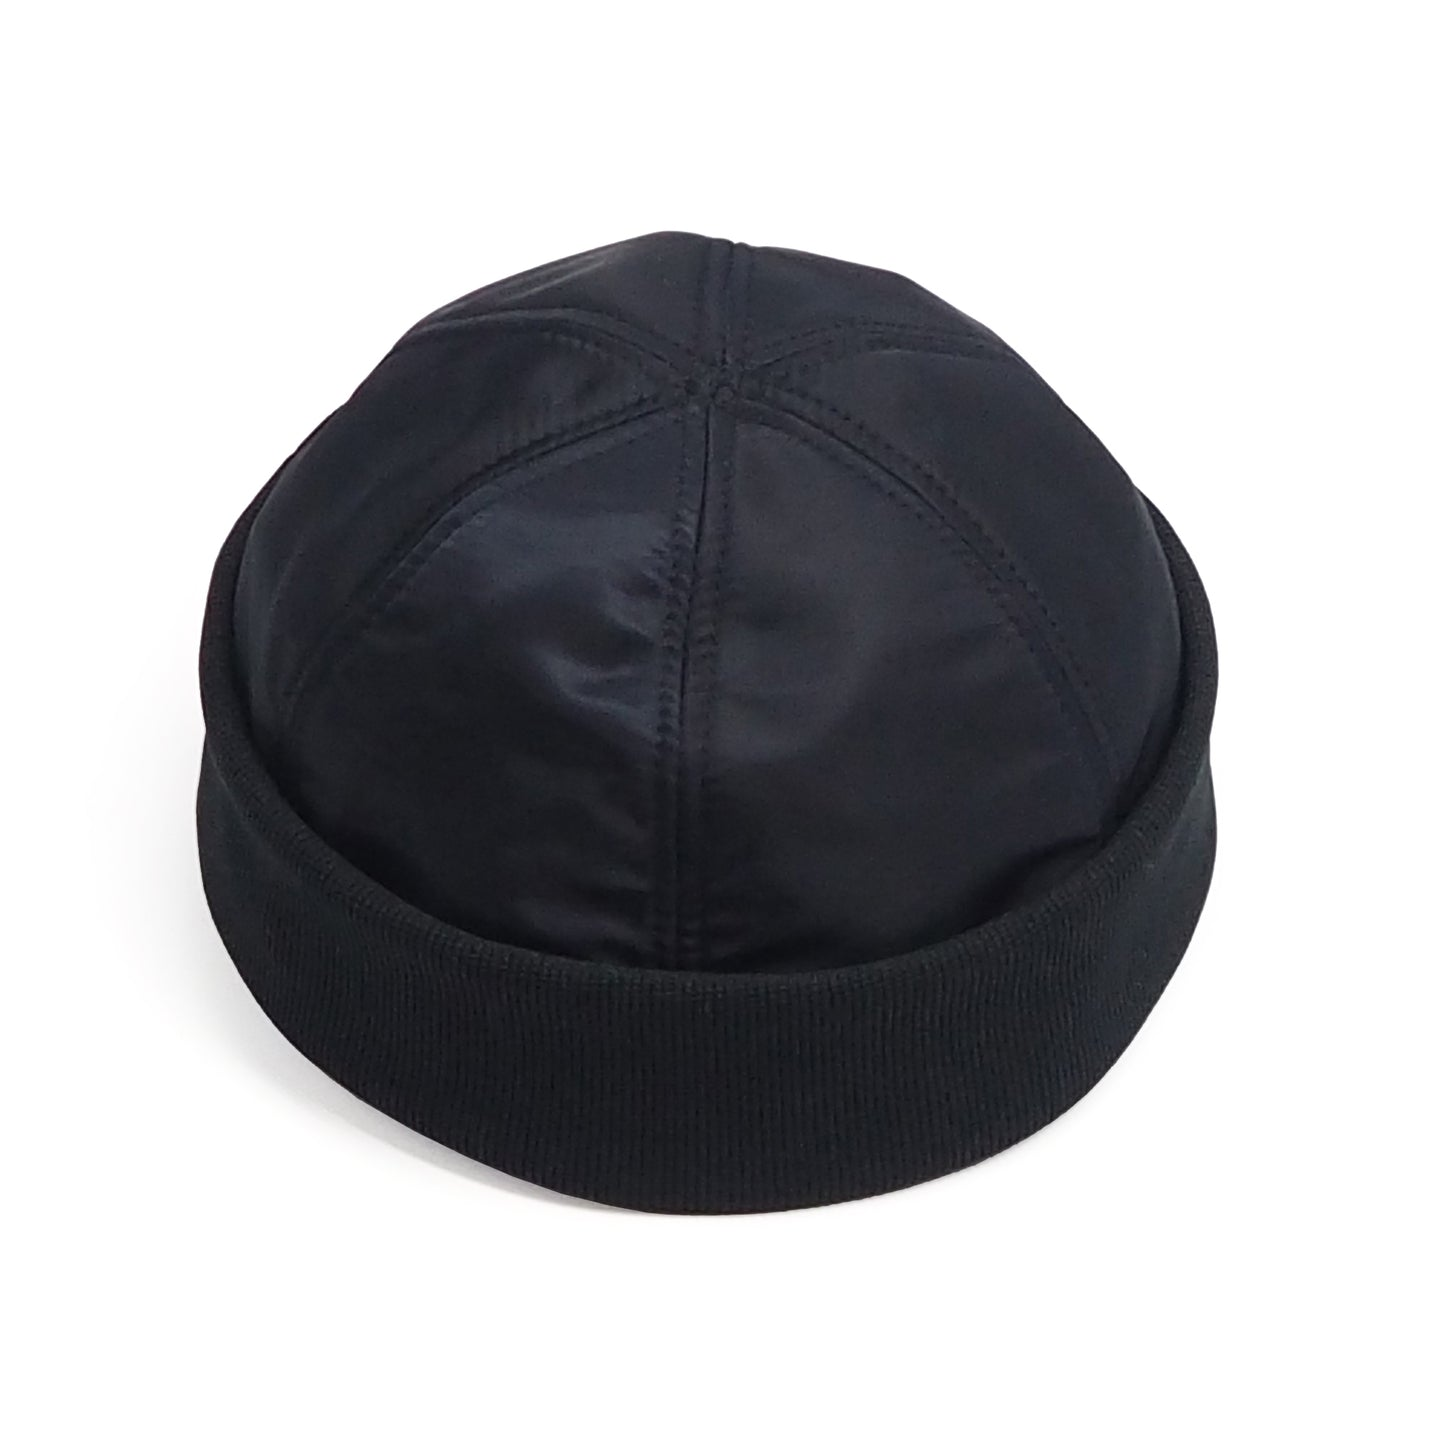 NEW - 6 Panel Watch Cap // MA-1 Flight Satin